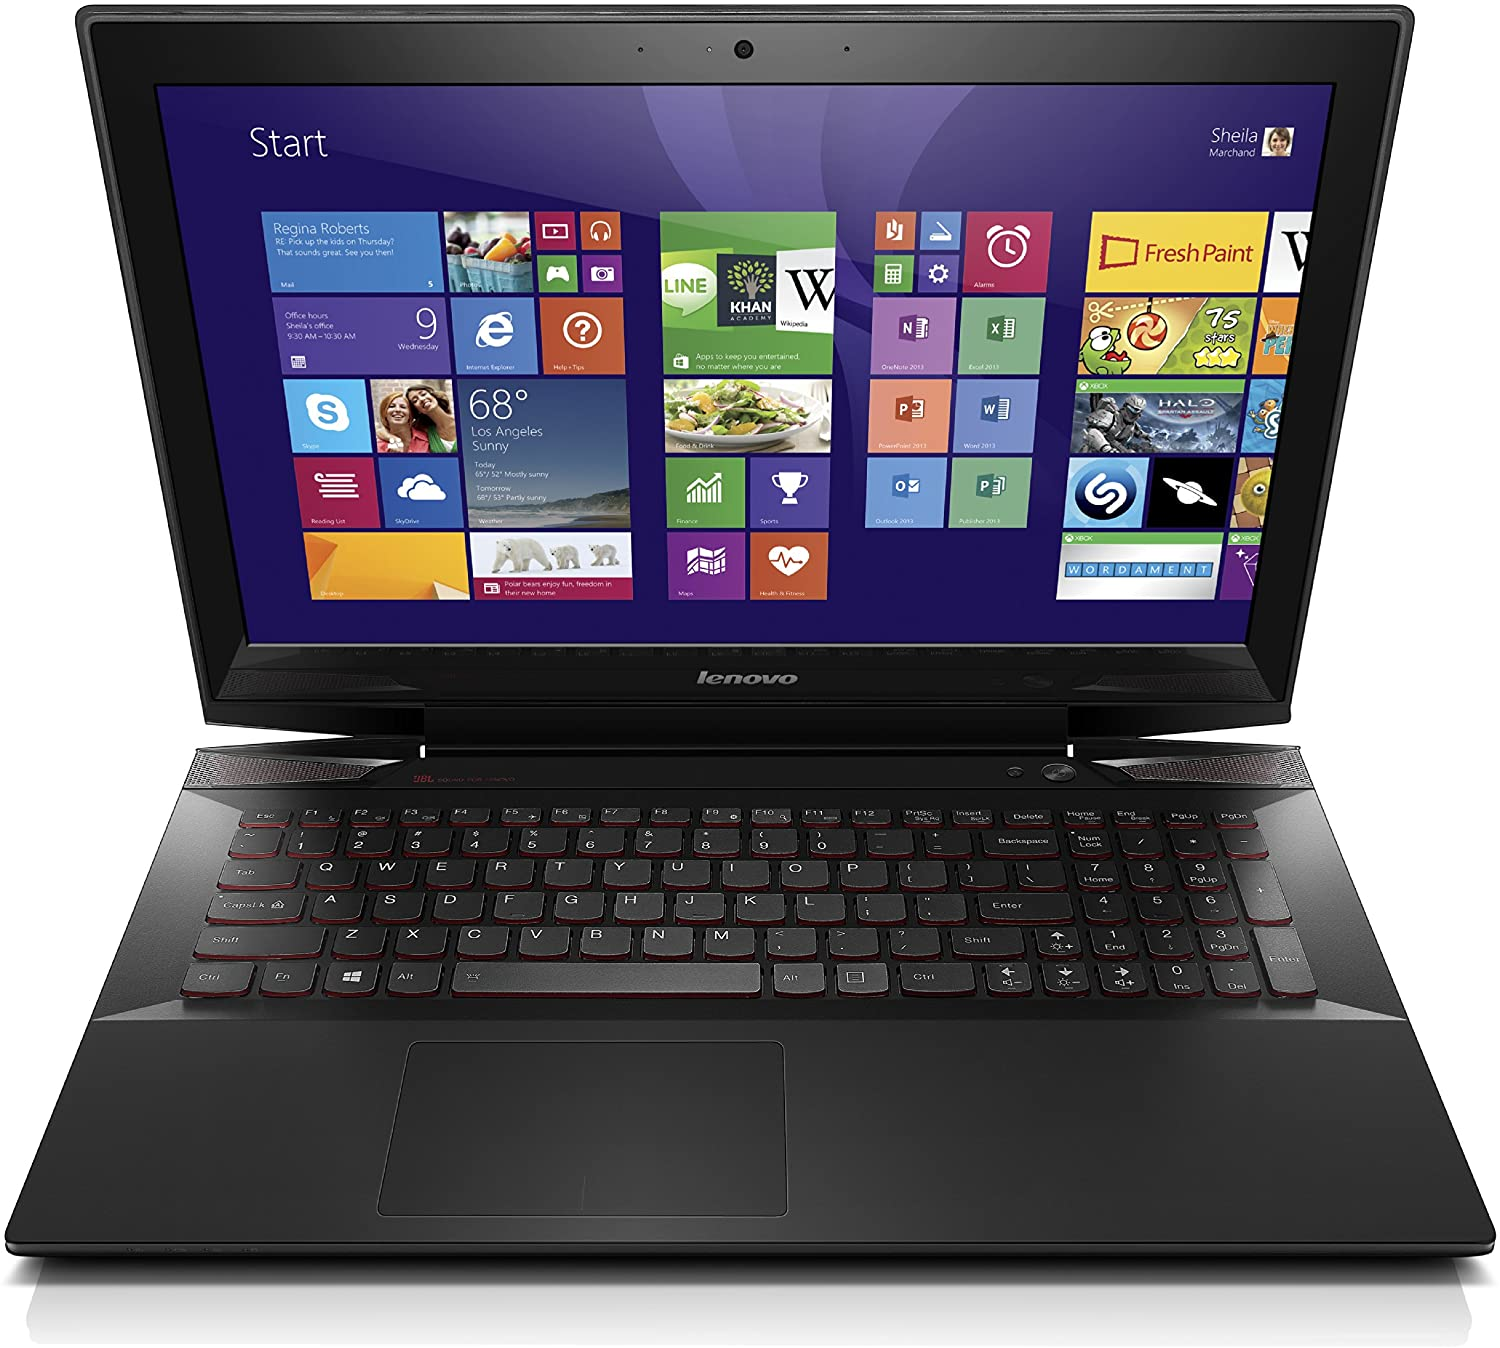 Amazon.com: Lenovo Y50 15.6-Inch Gaming Laptop (59425944) Black ...